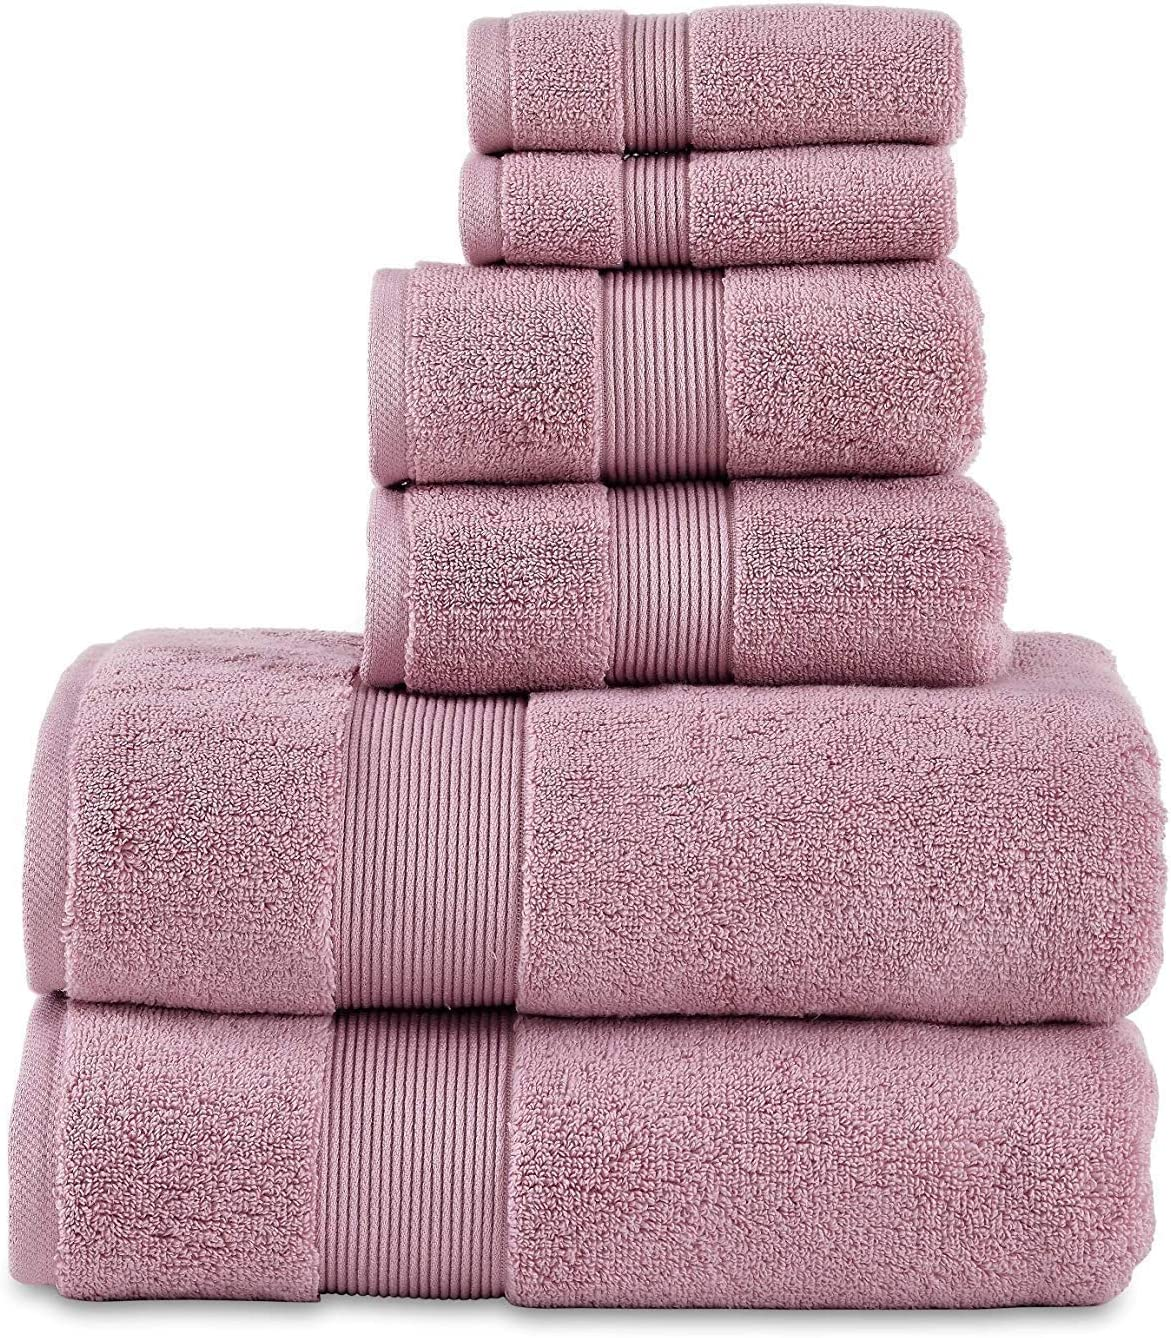 703 Gsm 6 Piece Towels Set 100 Cotton Zero Twist Premium Hotel Spa Quality Highly Absorbent 2 Bath Towels 30 X 54 2 Hand Towel 16 X 28 And 2 Wash Cloth 12 X 12 Mauve Color Kitchen Dining